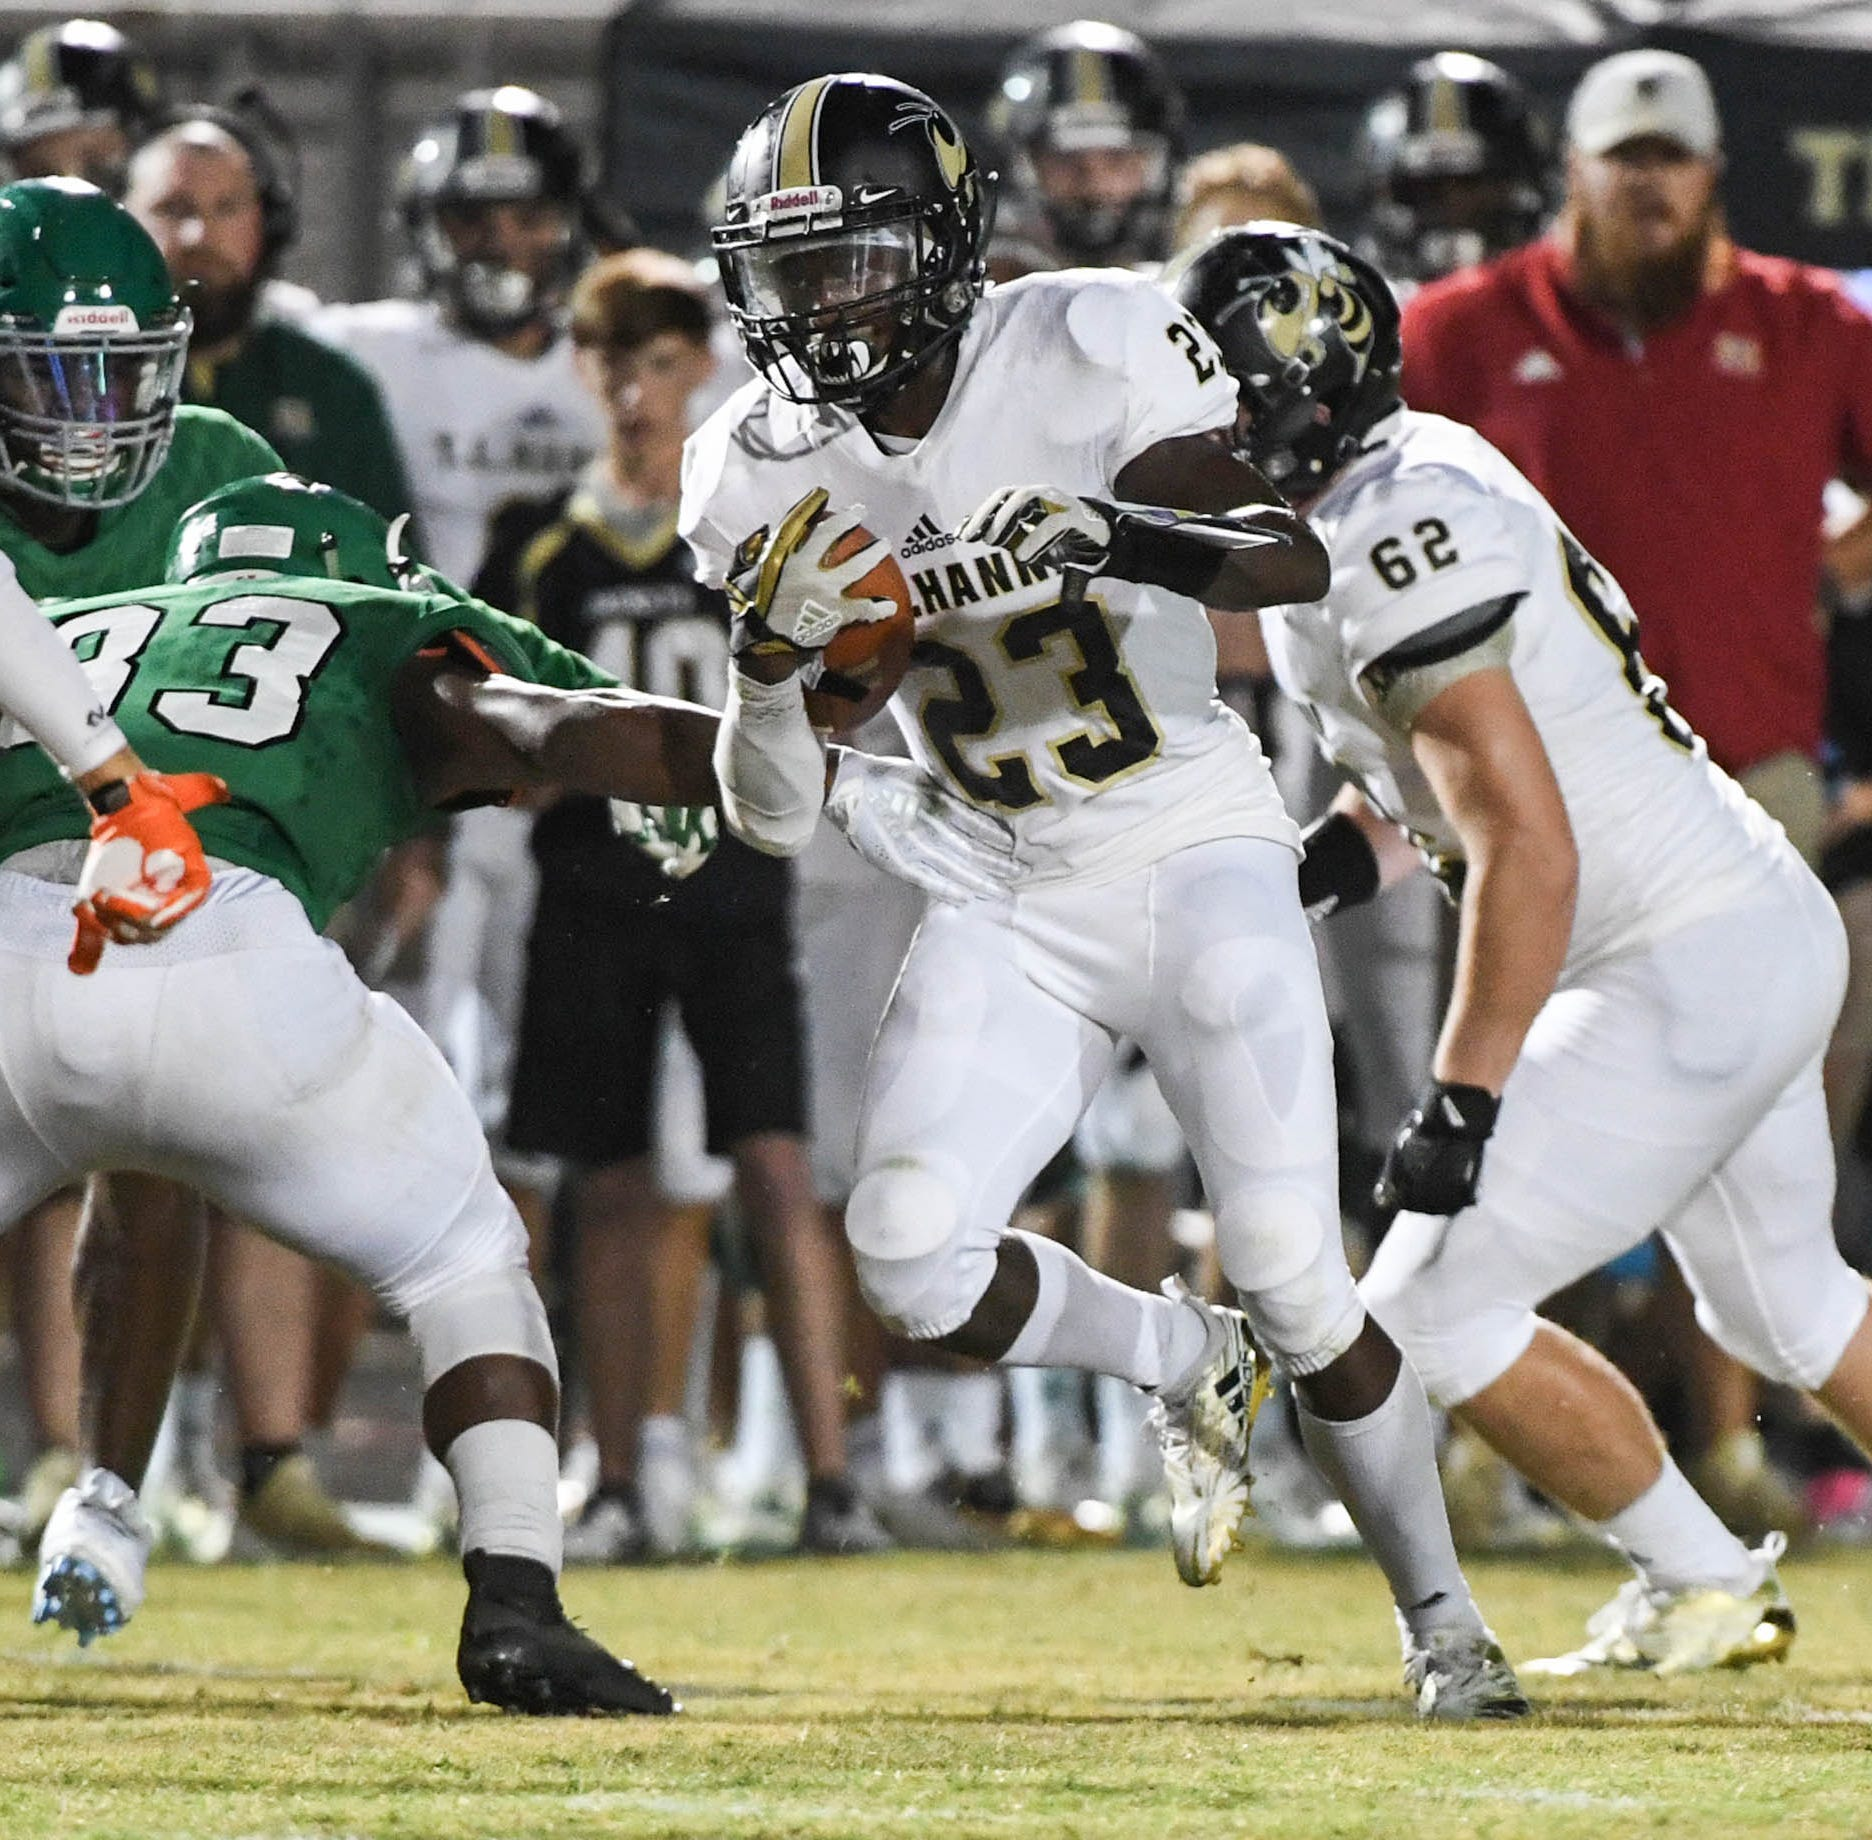 T.L. Hanna could win region title this week, plus four other storylines for Week 9